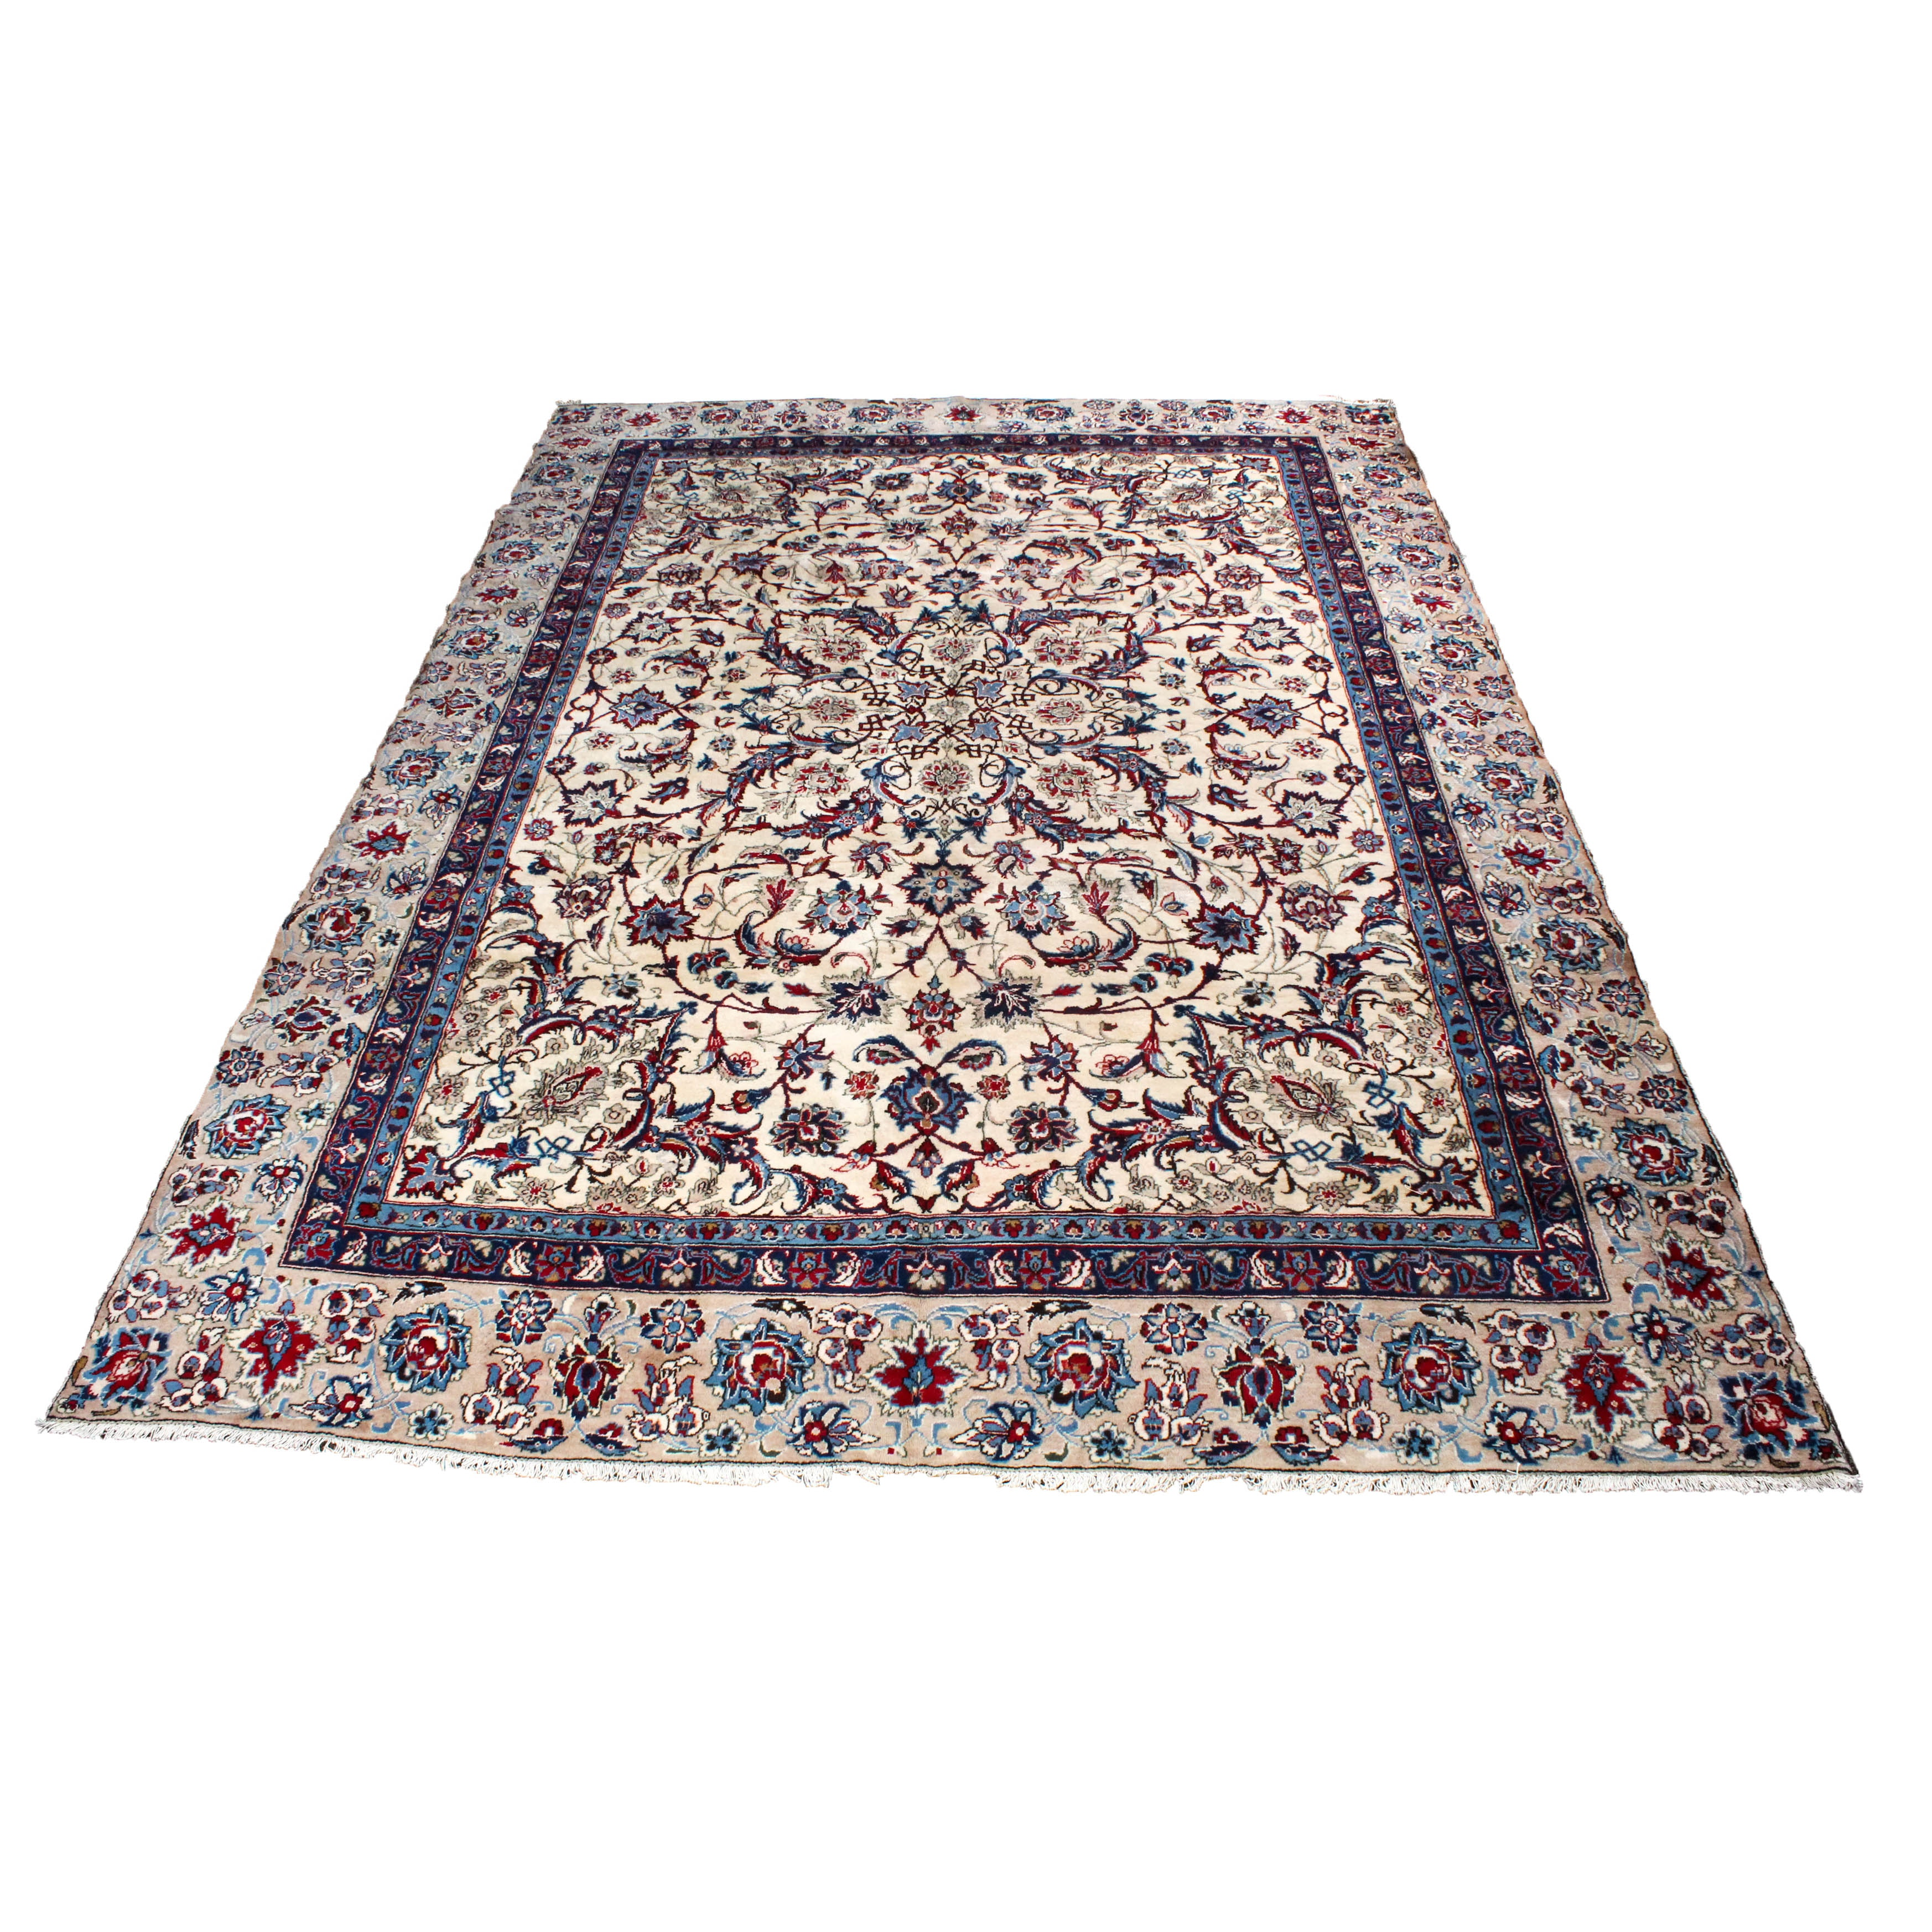 8'11 x 12'6 Semi-Antique Hand-Knotted Persian Kashmar Room Size Rug